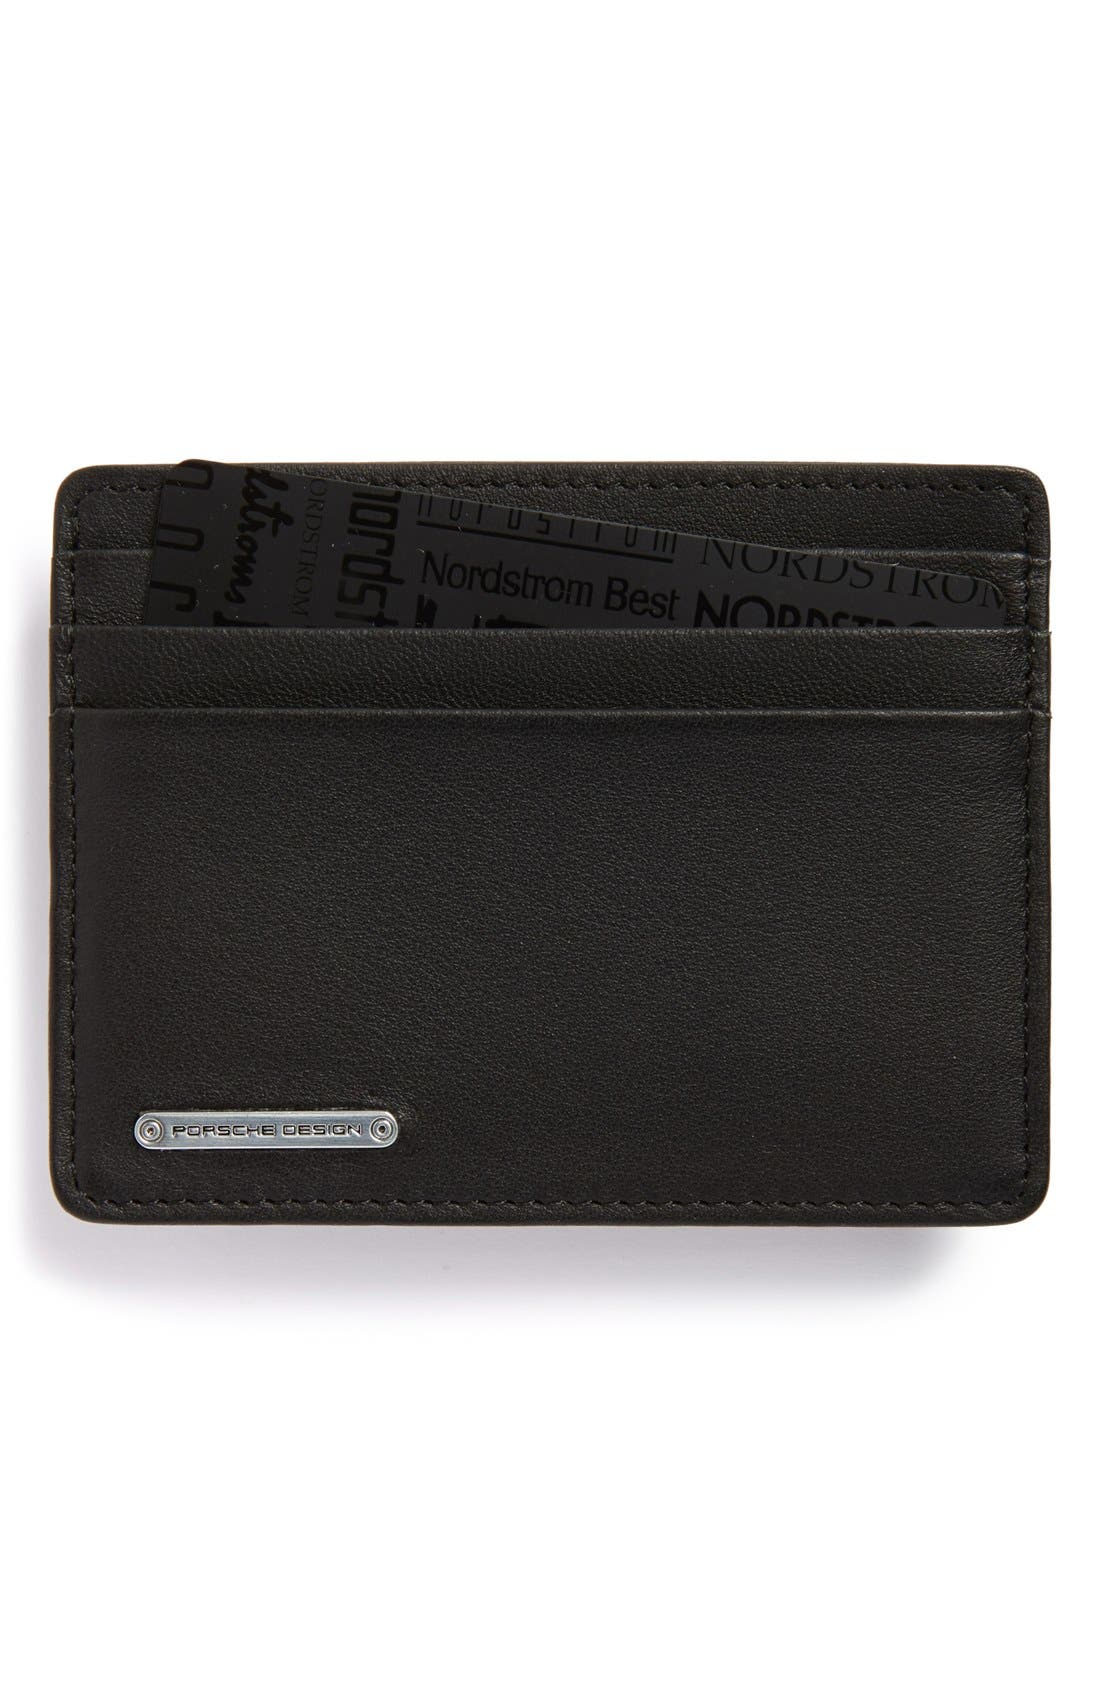 Leather Cardholder,                             Main thumbnail 1, color,                             Black